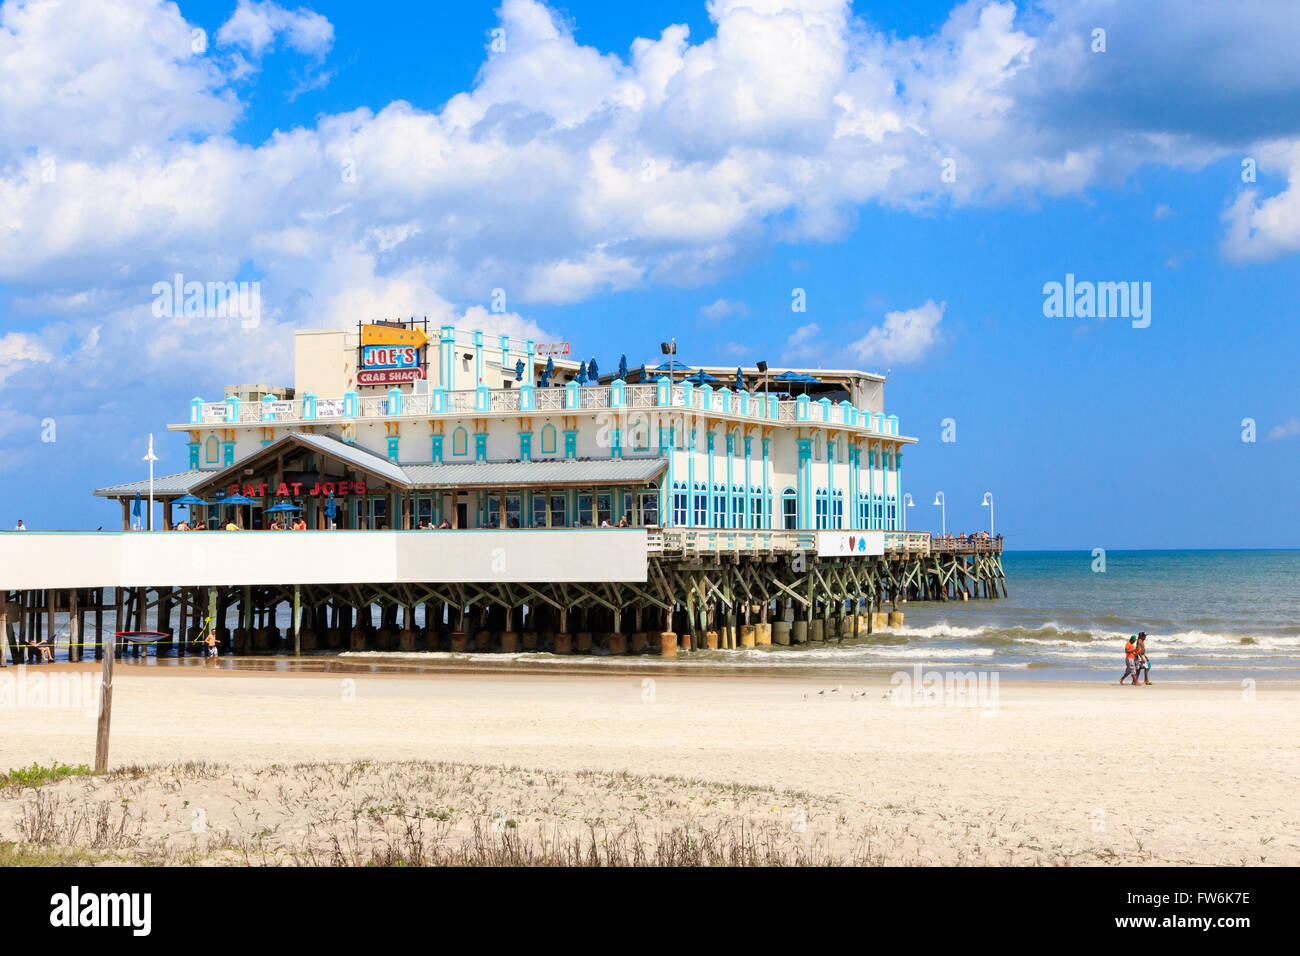 Daytona beach with tourists and sunbathers, Florida, America, USA and the traditional pier in the background. - Stock Image